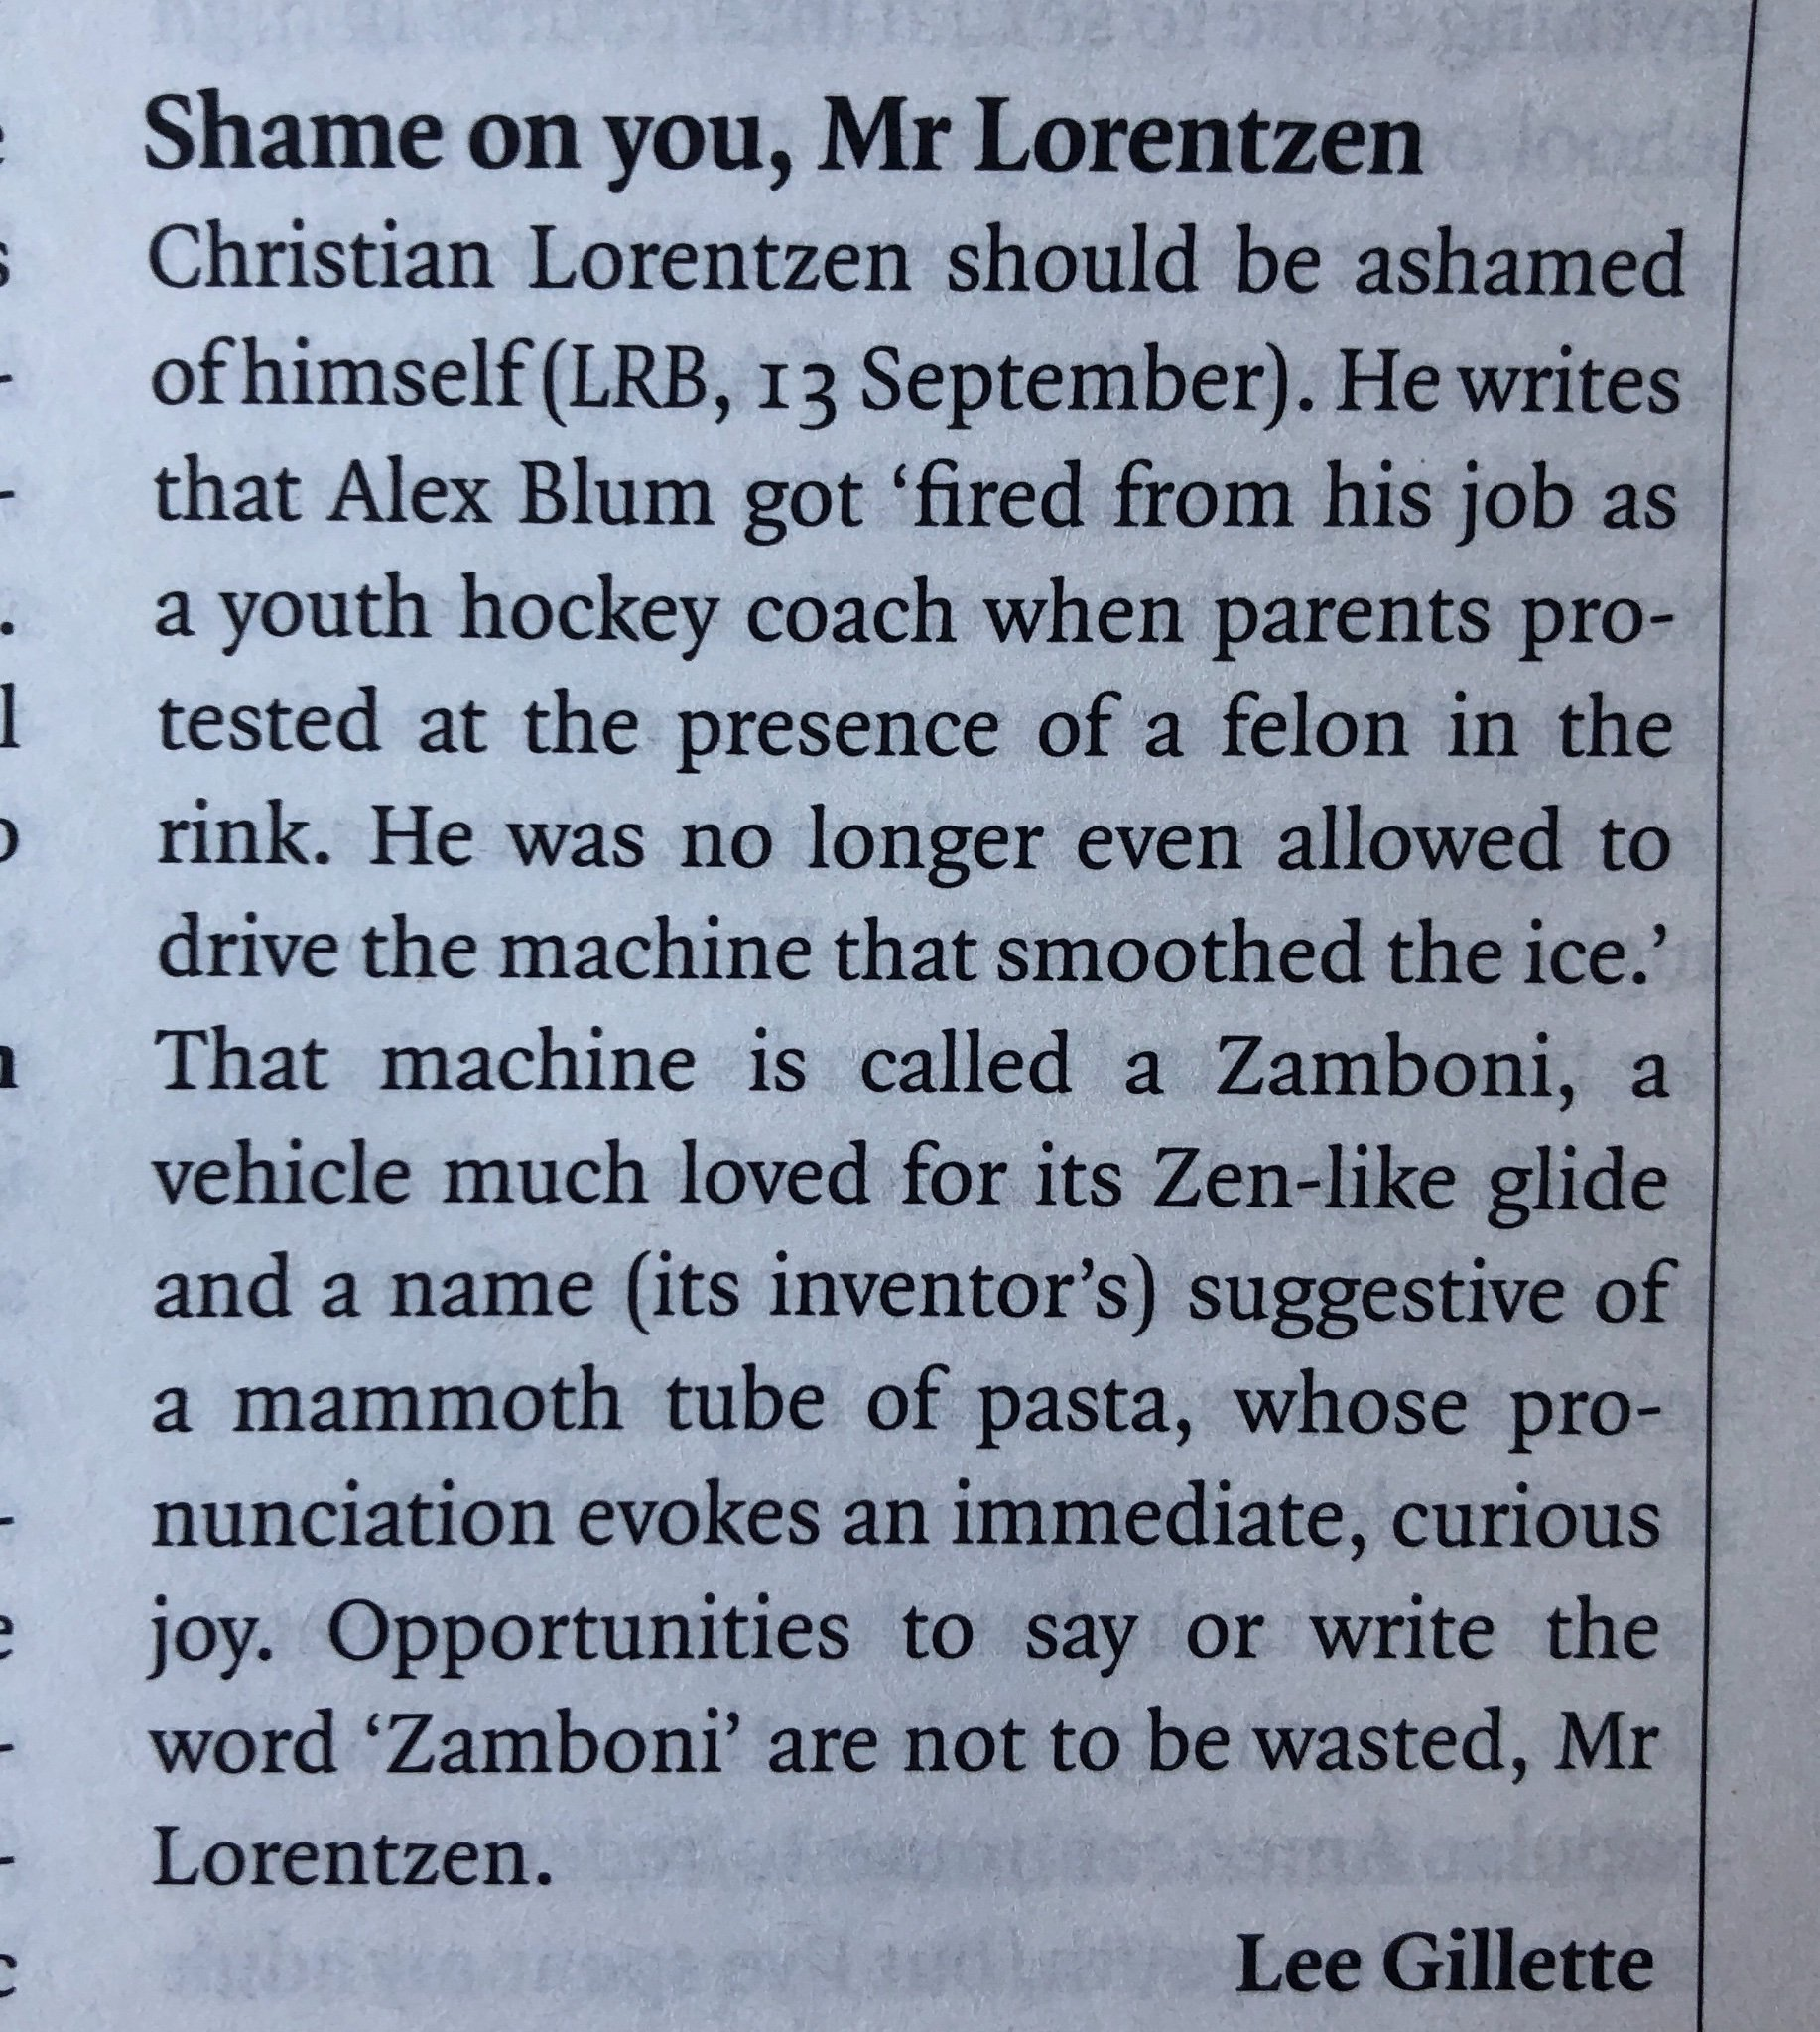 Stirring, righteous anger in this week's LRB paper